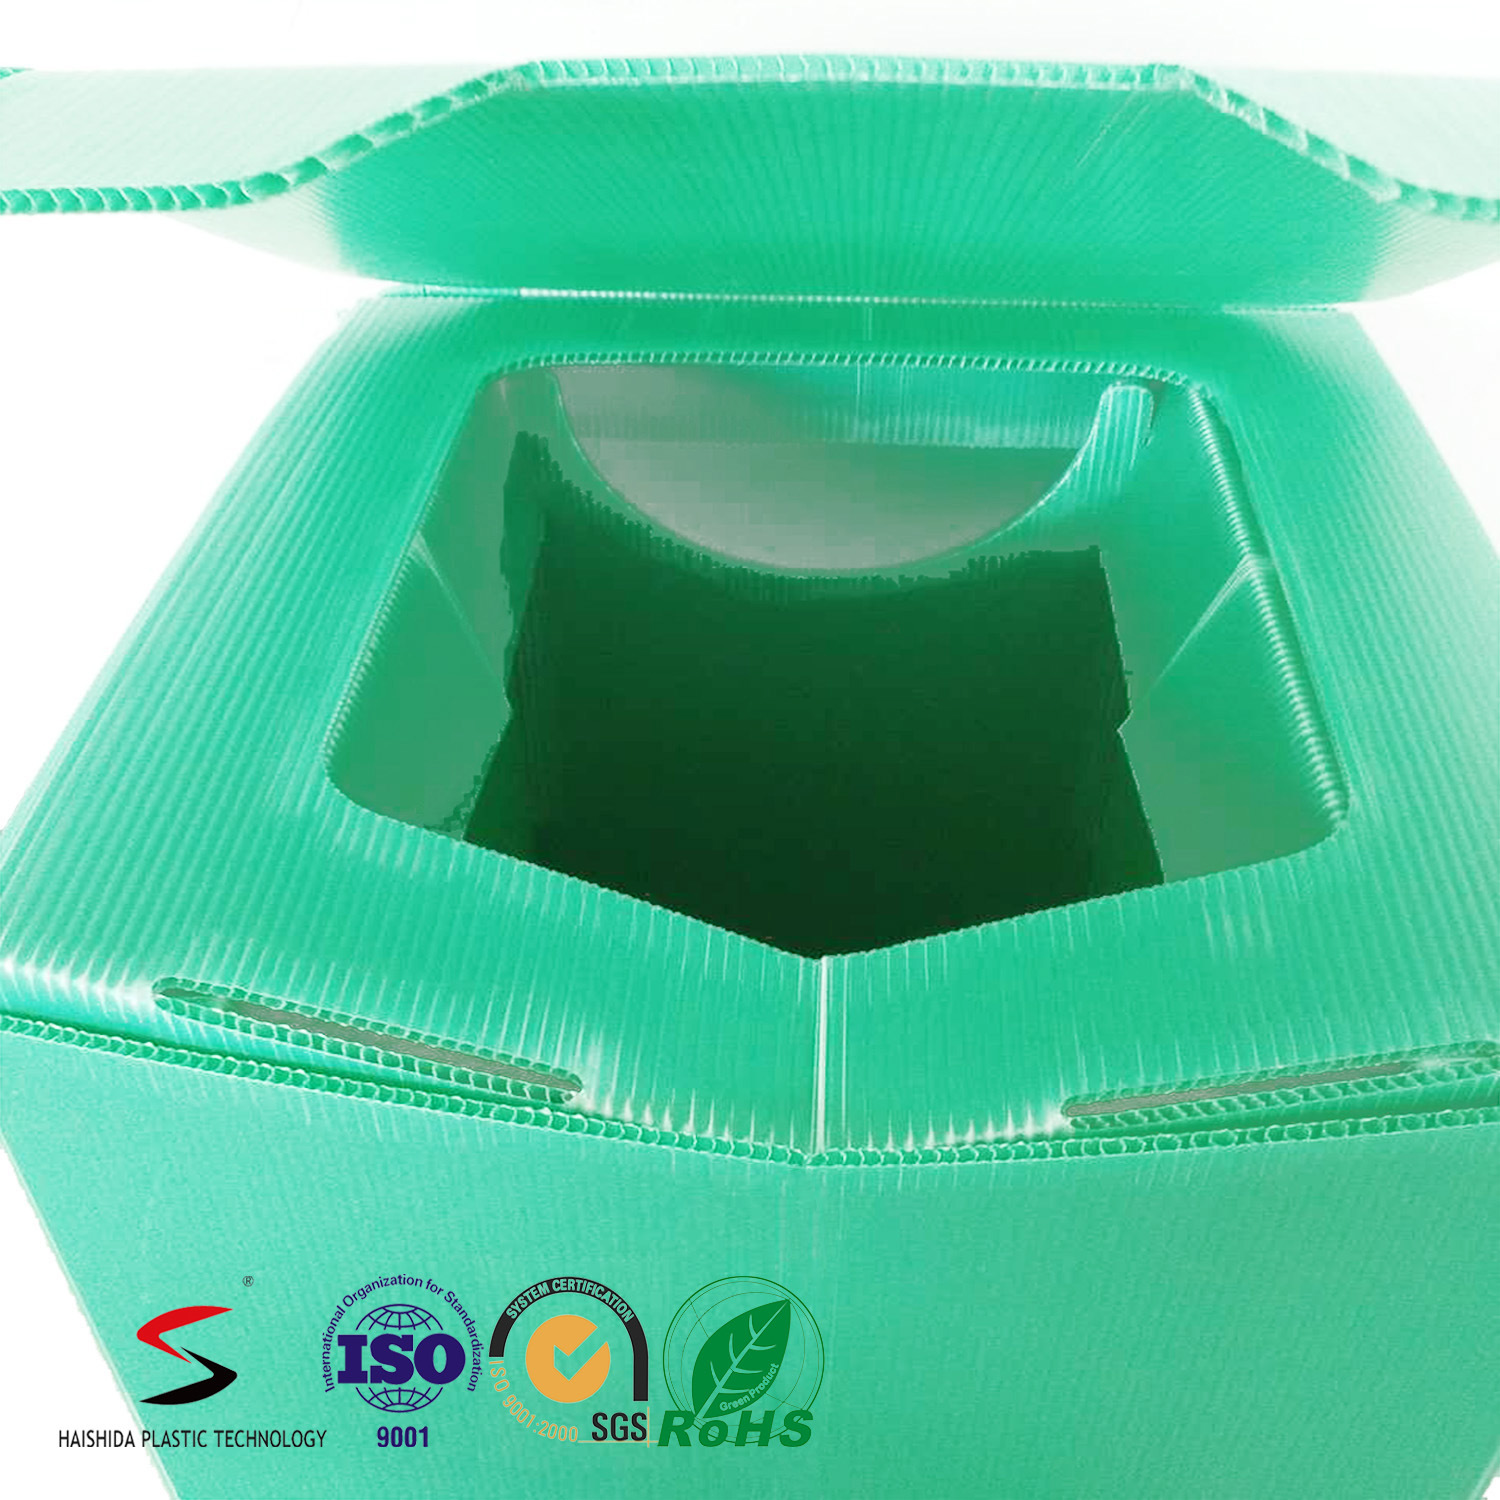 Corrugated Plastic Toilet Disaster Prevention Goods Temporary Toilet